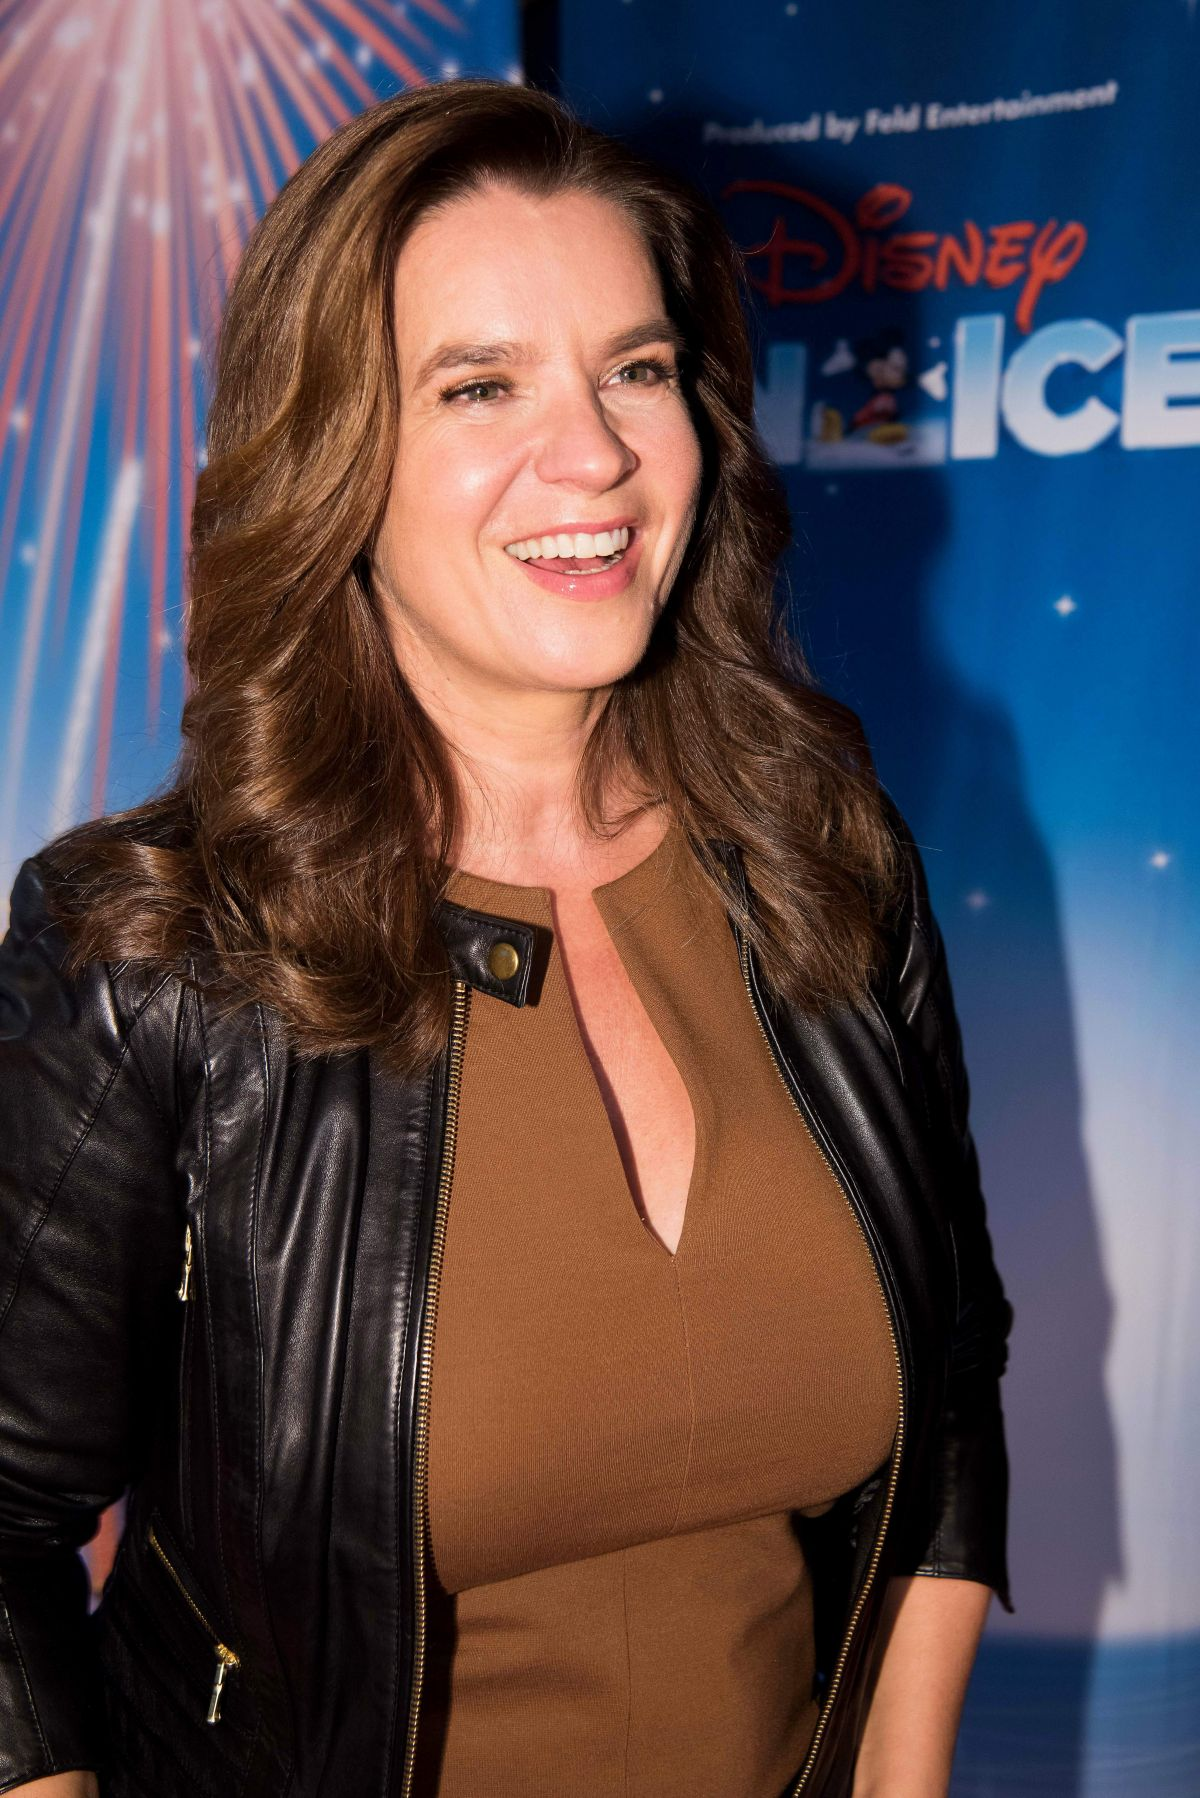 KATARINA WITT at Disney on Ice Premiere at Lanxess Arena in Cologne 11/04/2016